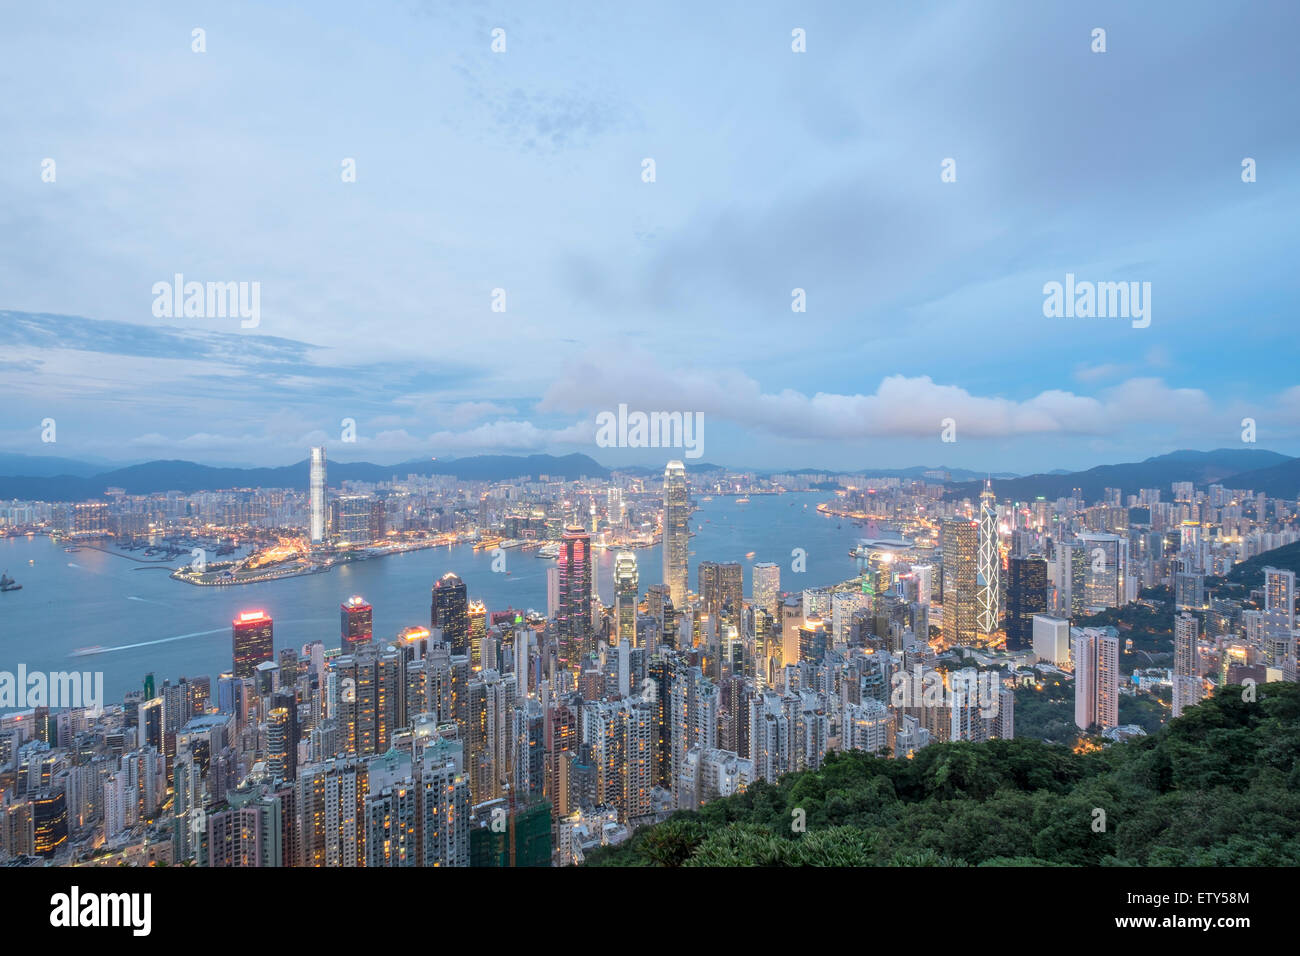 Dusk skyline of Hong Kong and Victoria Harbour from The Peak on a clear day - Stock Image